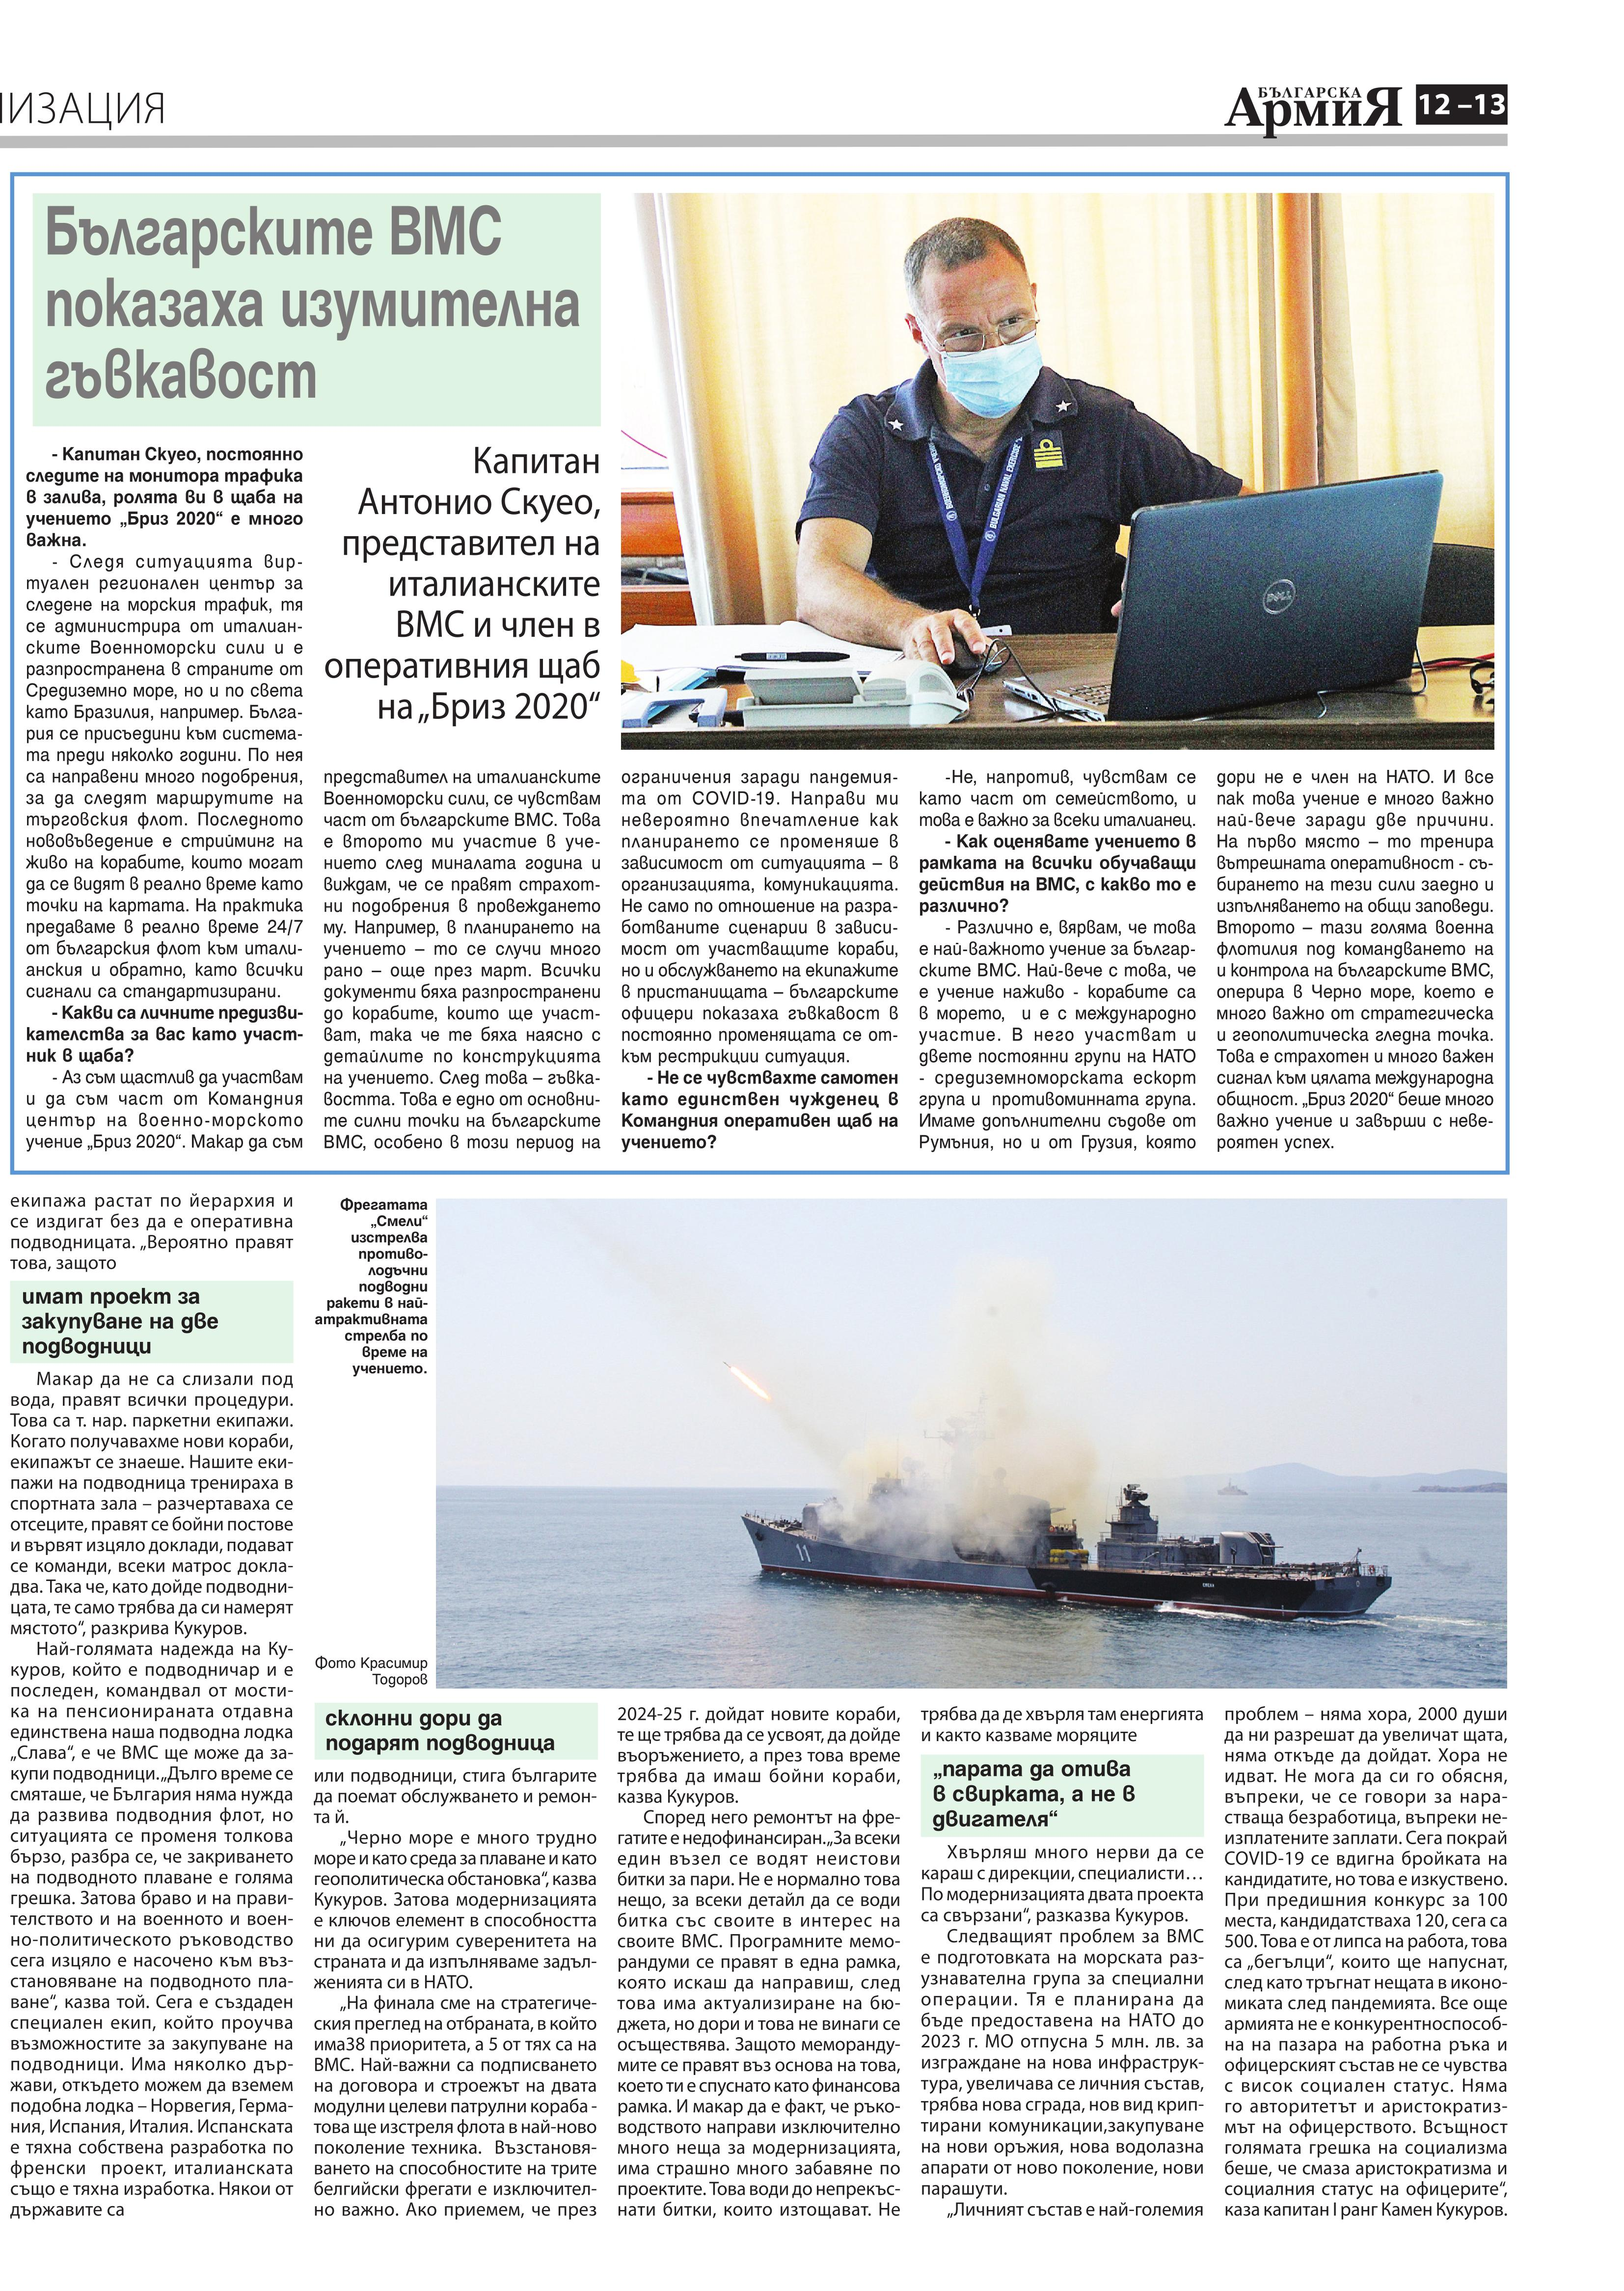 https://www.armymedia.bg/wp-content/uploads/2015/06/13.page1_-149.jpg